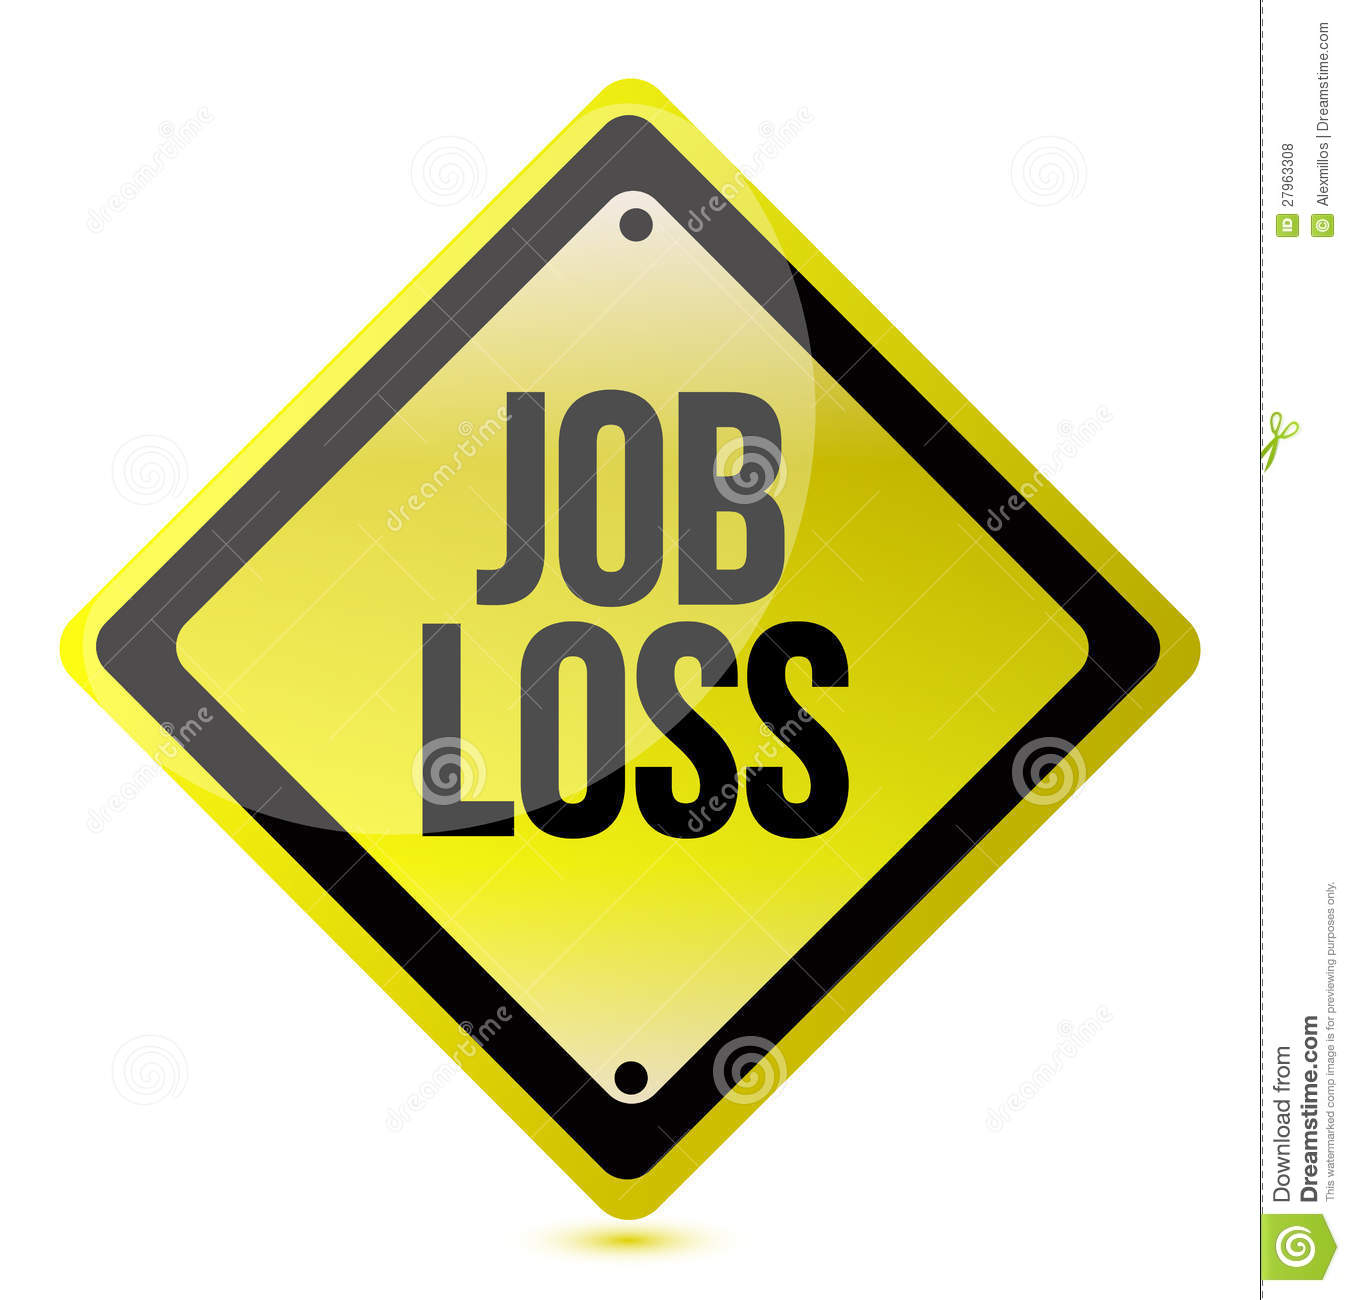 Job loss sign royalty free stock photos image 27963308 - Traffic planning and design layoffs ...